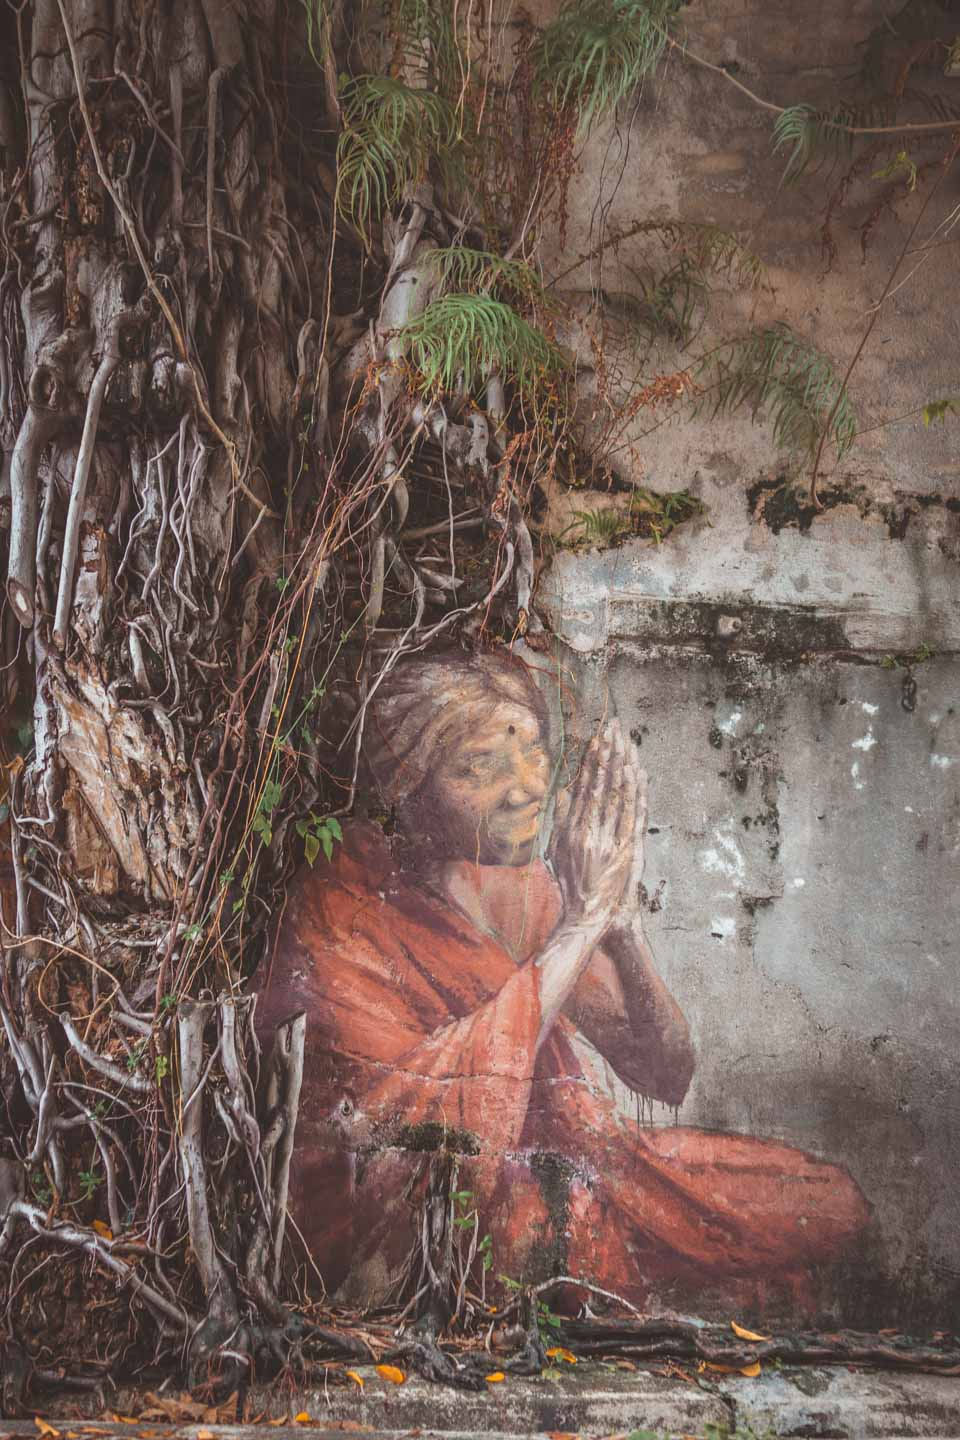 Indian Woman, Woman in Tree, Penang Street Art, Julia Volchkova, Malaysia